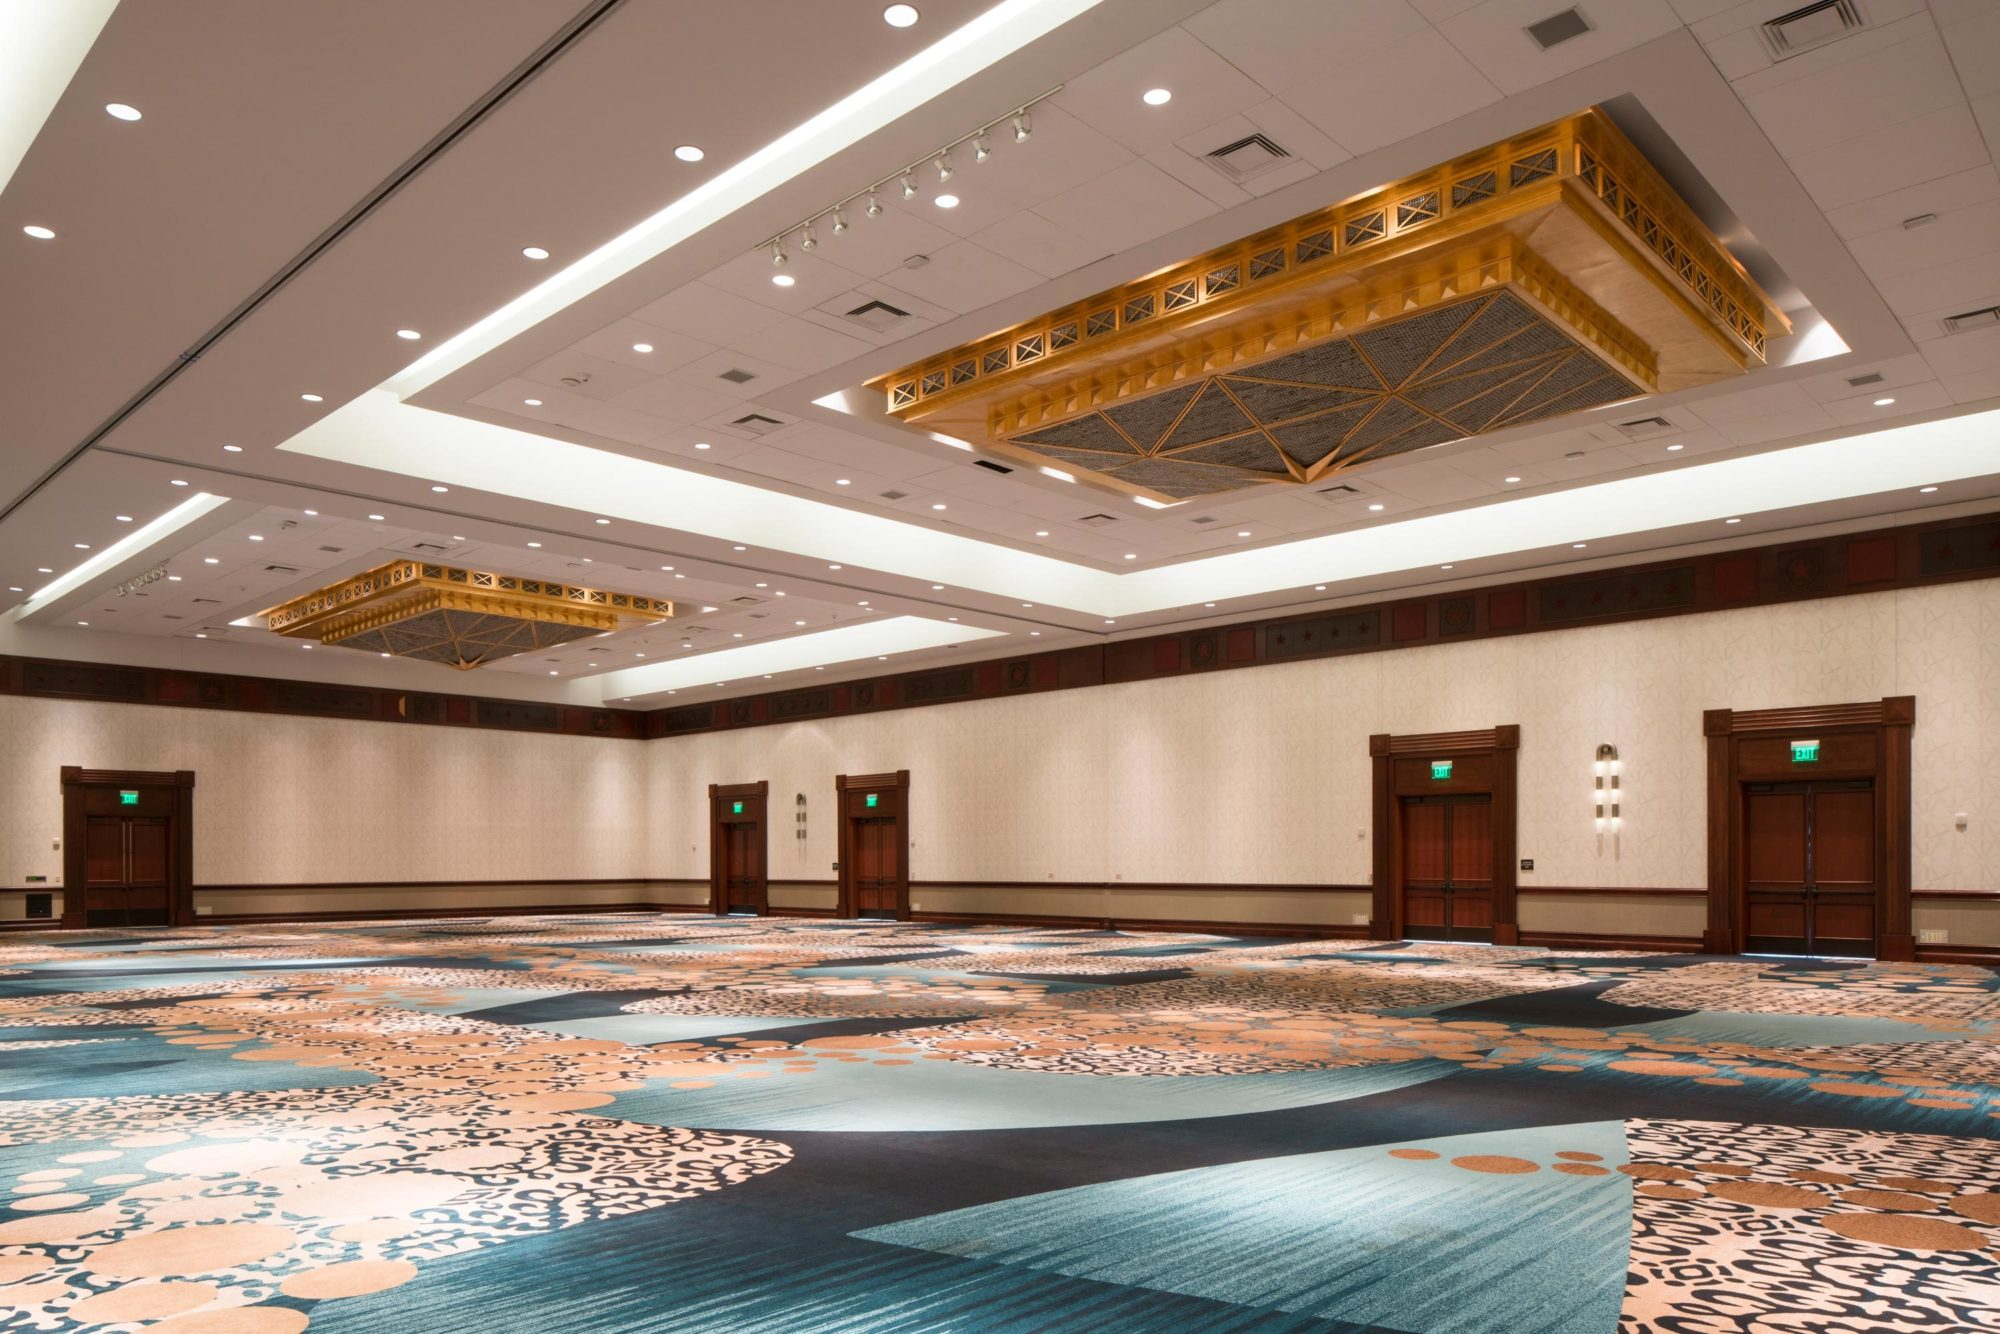 Hilton Ballroom And Lobby Renovation Harvey Harvey Cleary